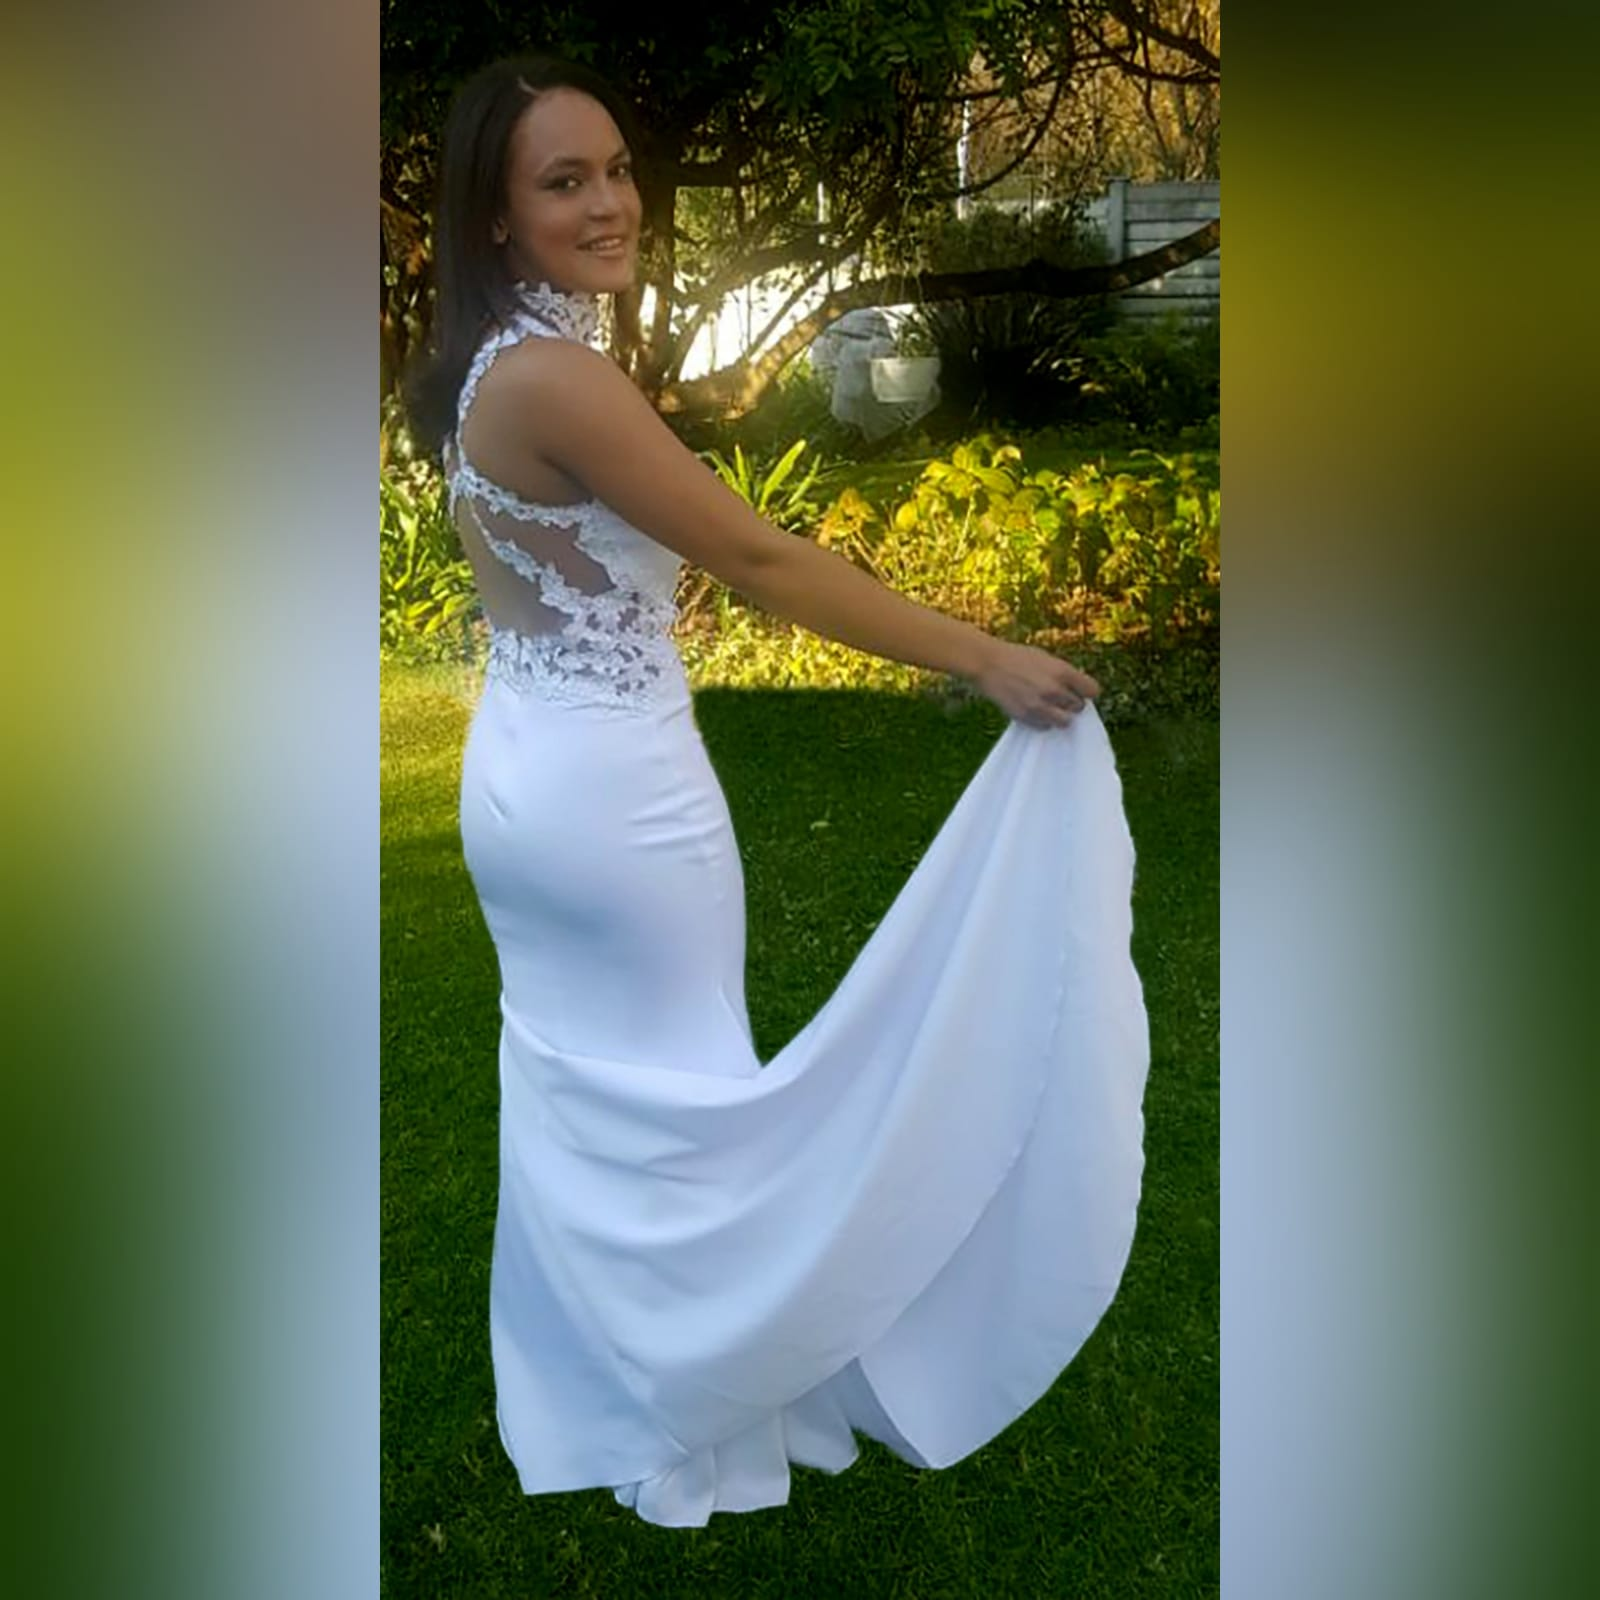 Choker white soft mermaid prom dress 3 white soft mermaid prom dress with a choker neckline and lace detail on the bodice, back & side tummy openings.